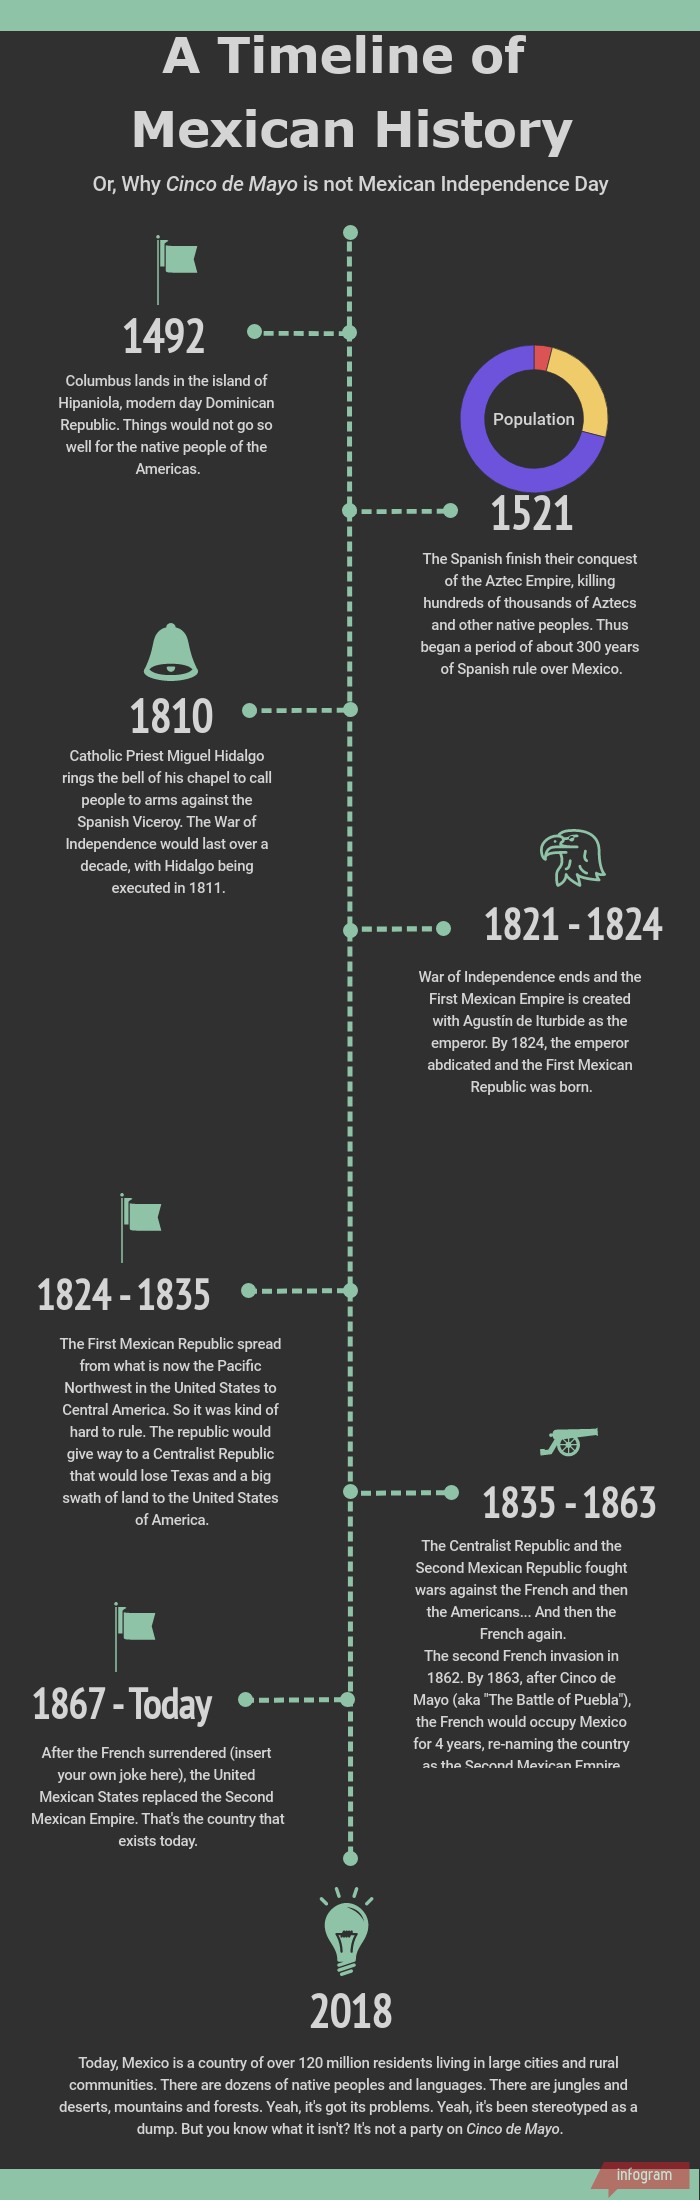 timeline-of-mexican-history